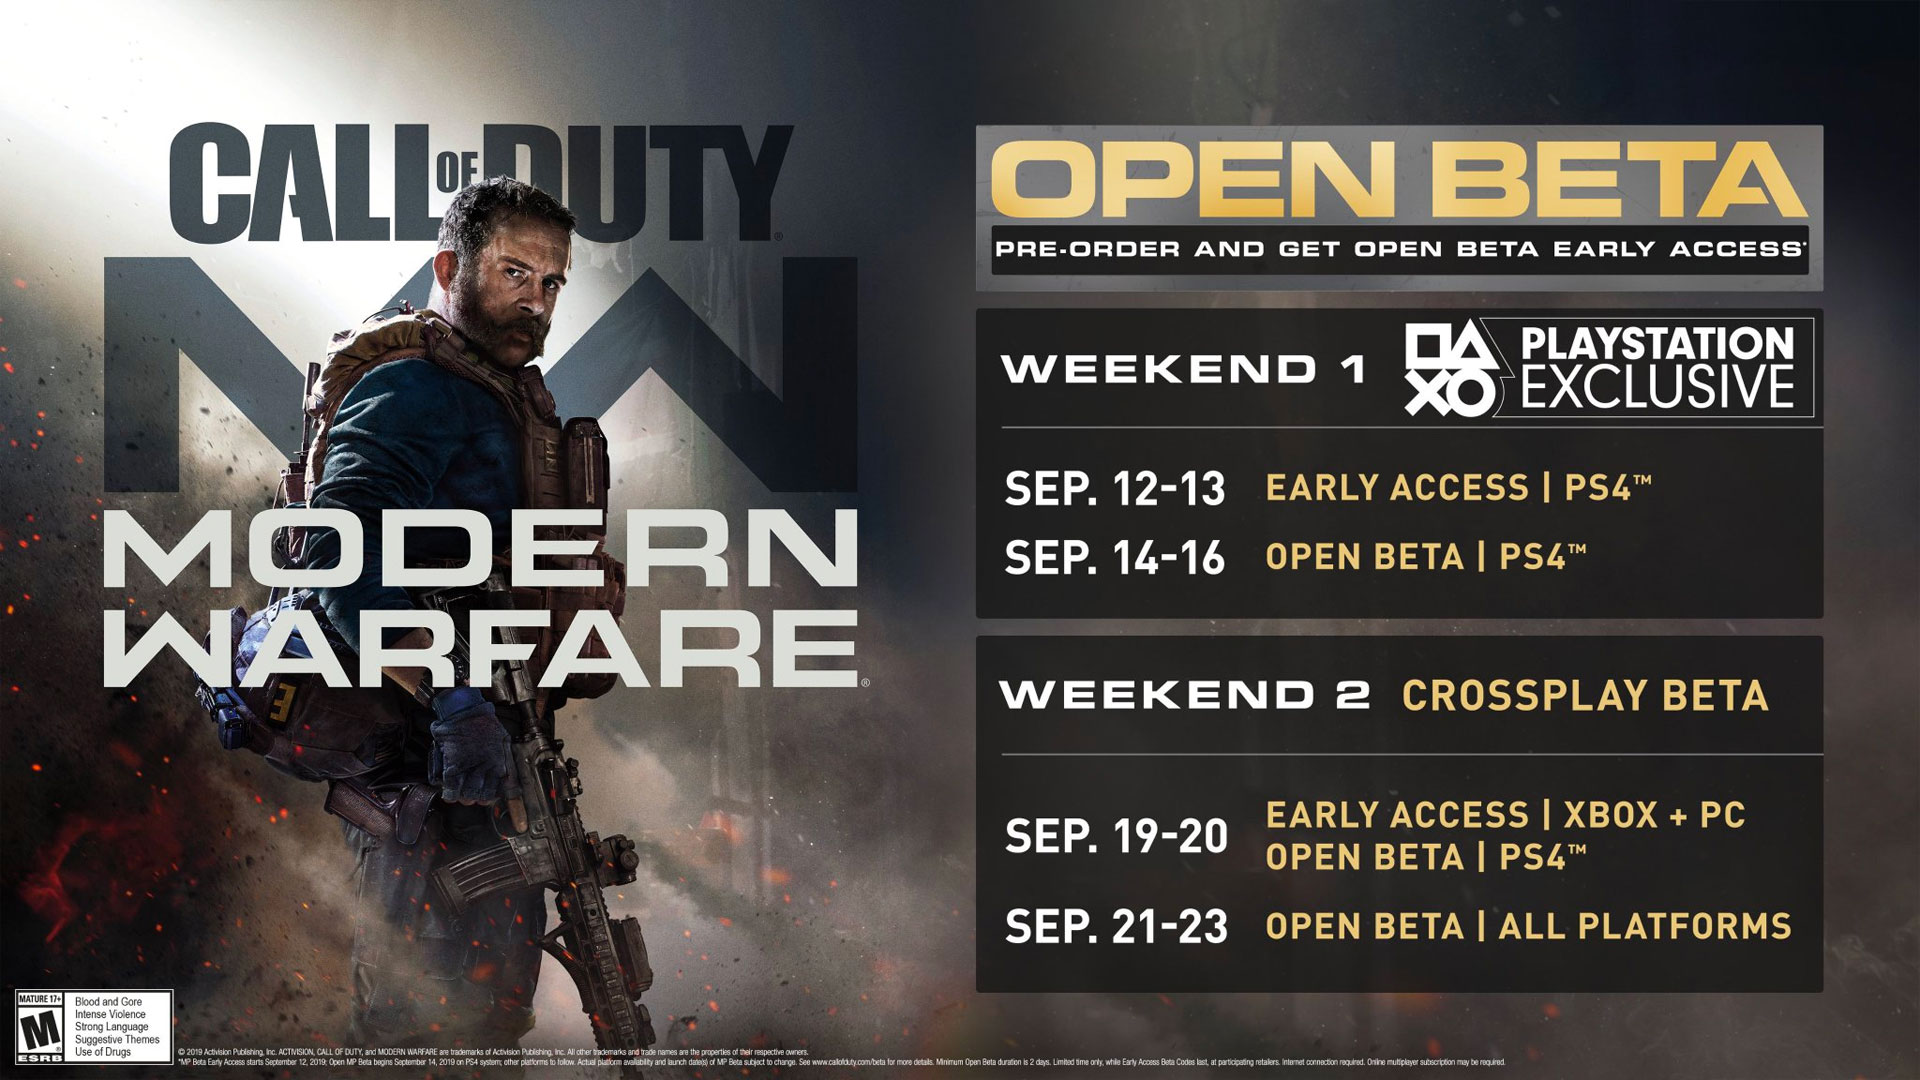 call of duty modern warfare open beta